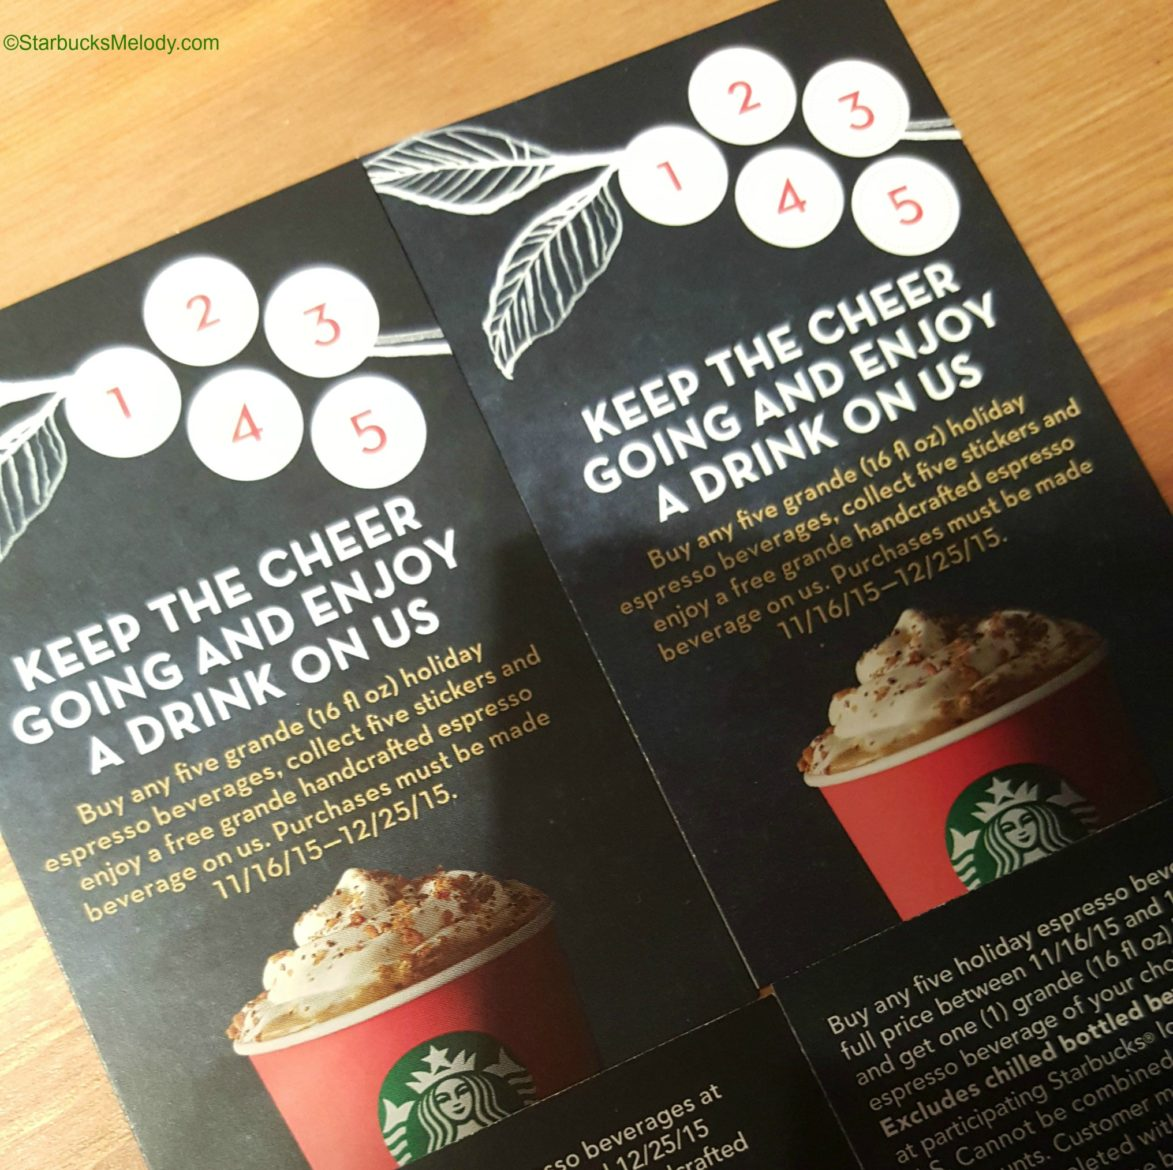 Buy 5 Grande Holiday Drinks at Starbucks: Get one free.